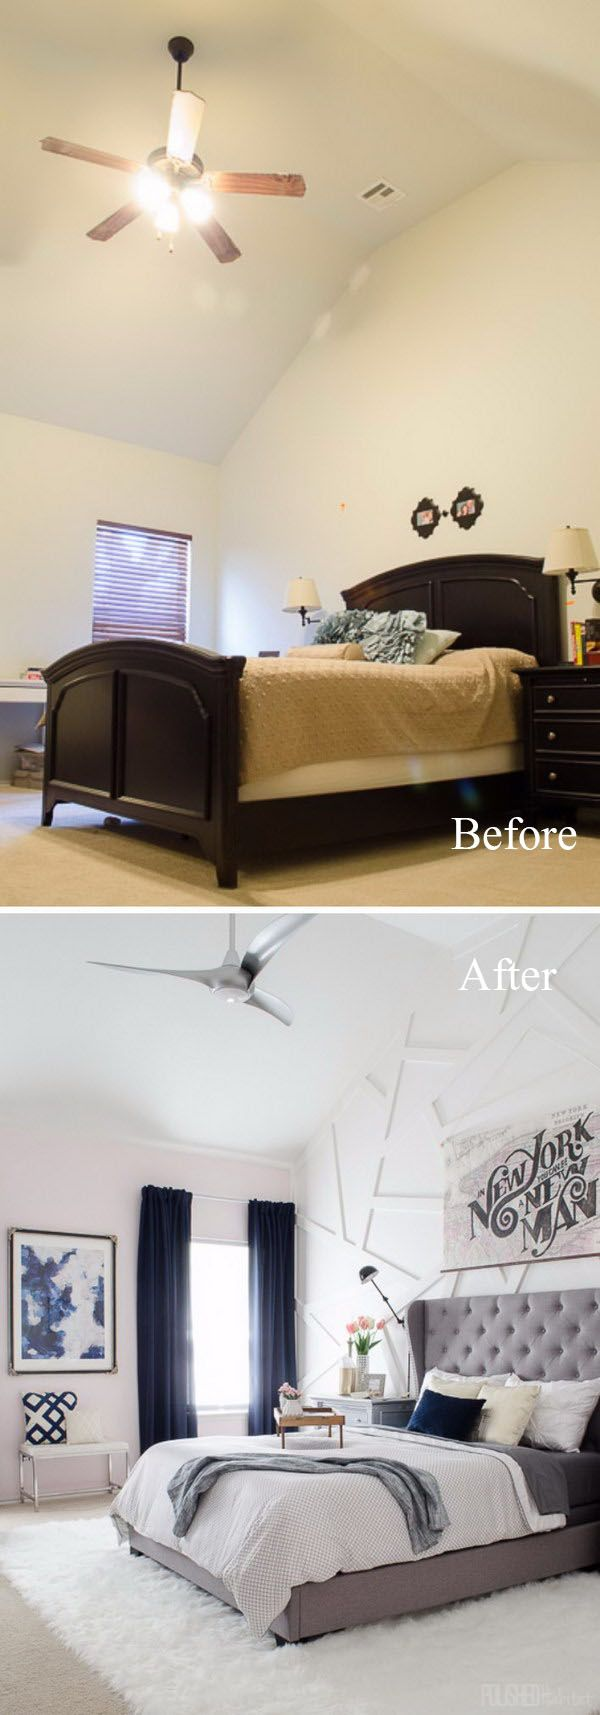 creative ways to make your small bedroom